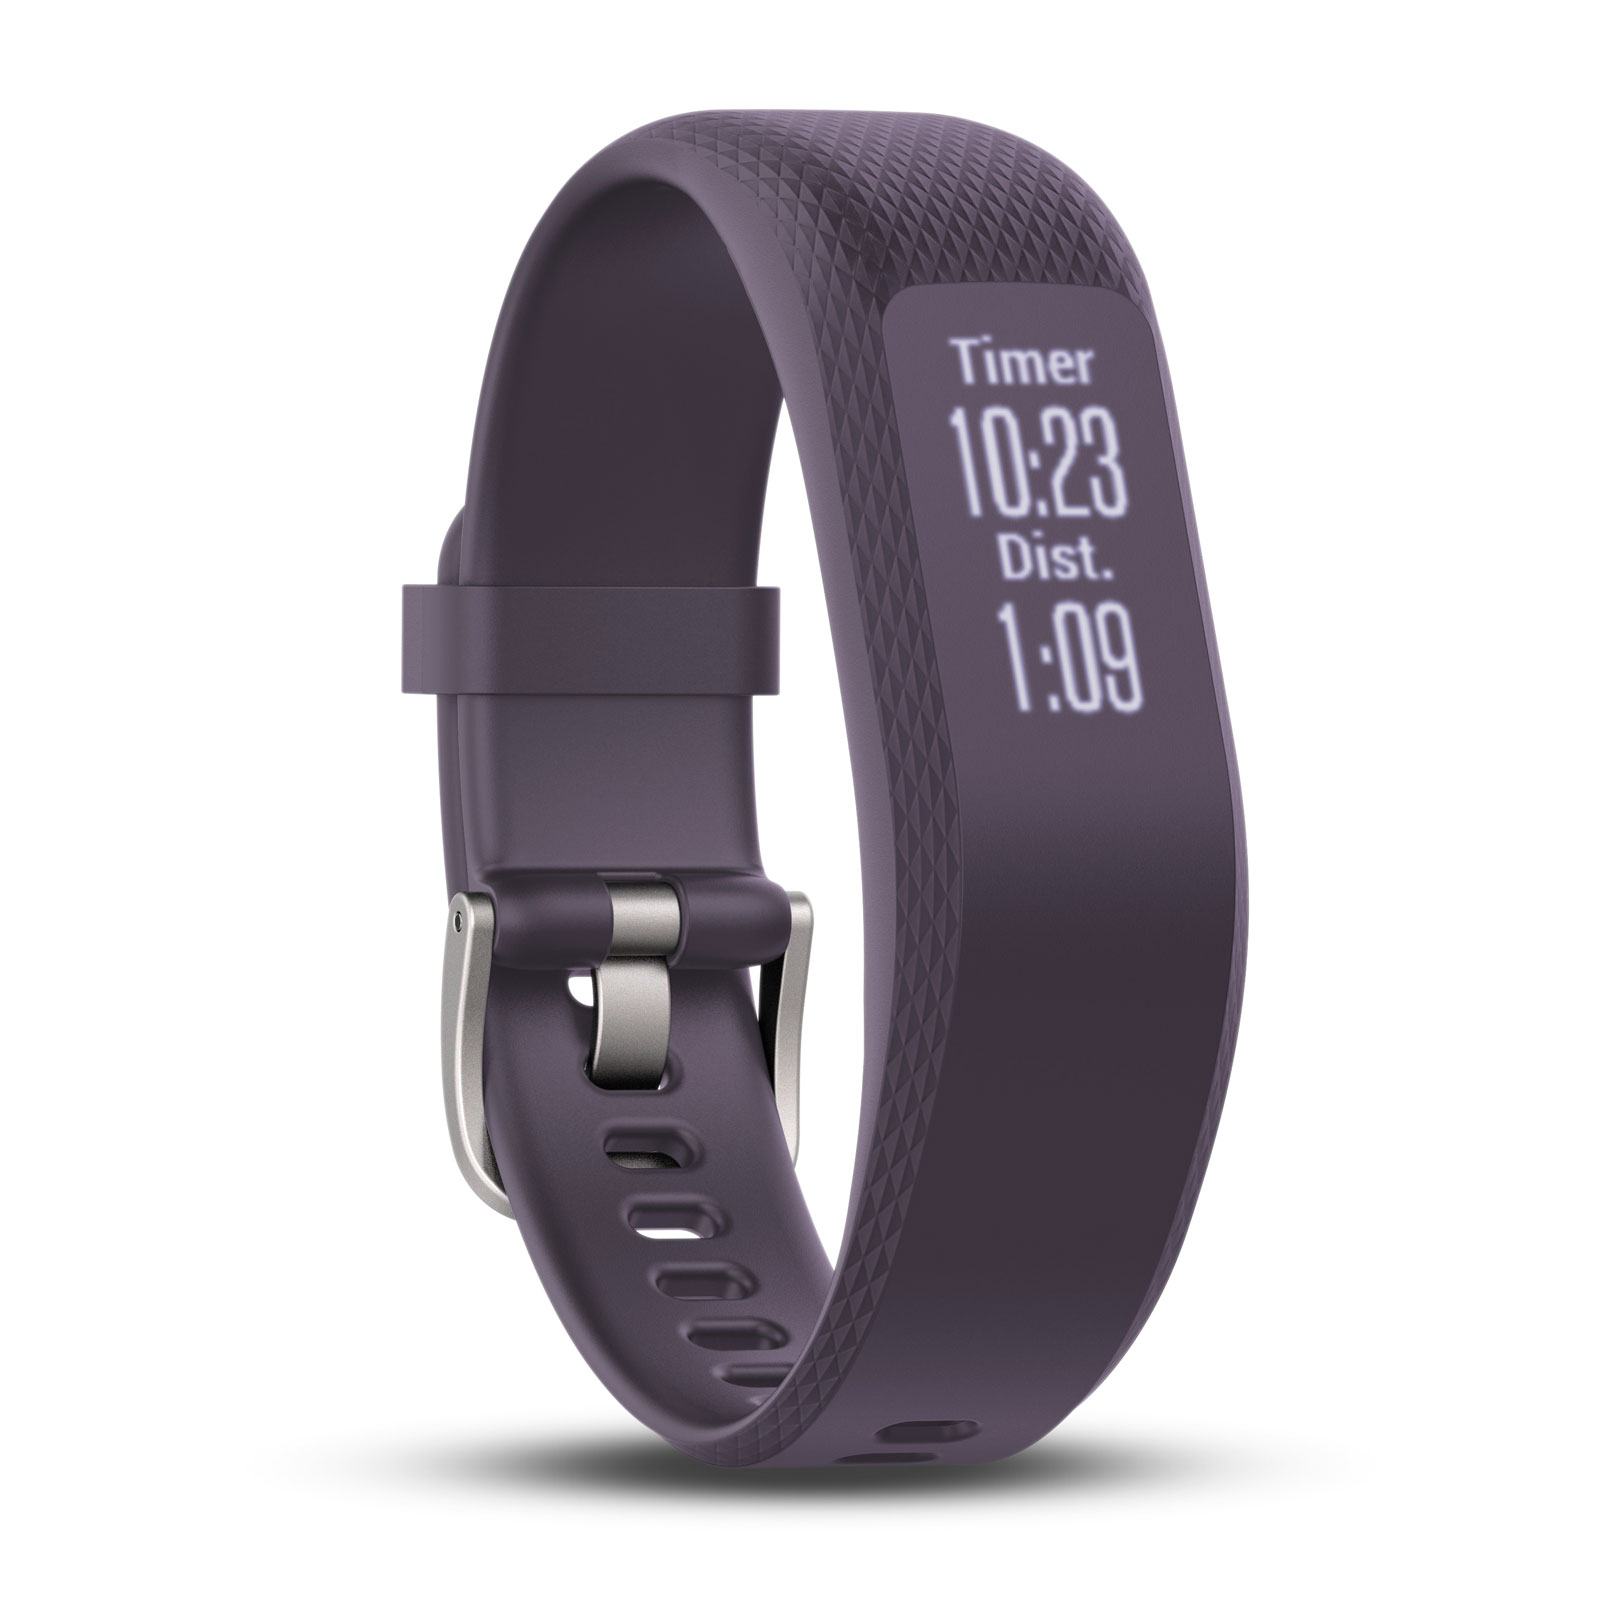 Bracelet connecté Garmin vívosmart 3 Violet Small/Medium Bracelet connecté étanche avec cardio poignet, tracker d'activité, Bluetooth et notifications (iOS, Android, Windows)